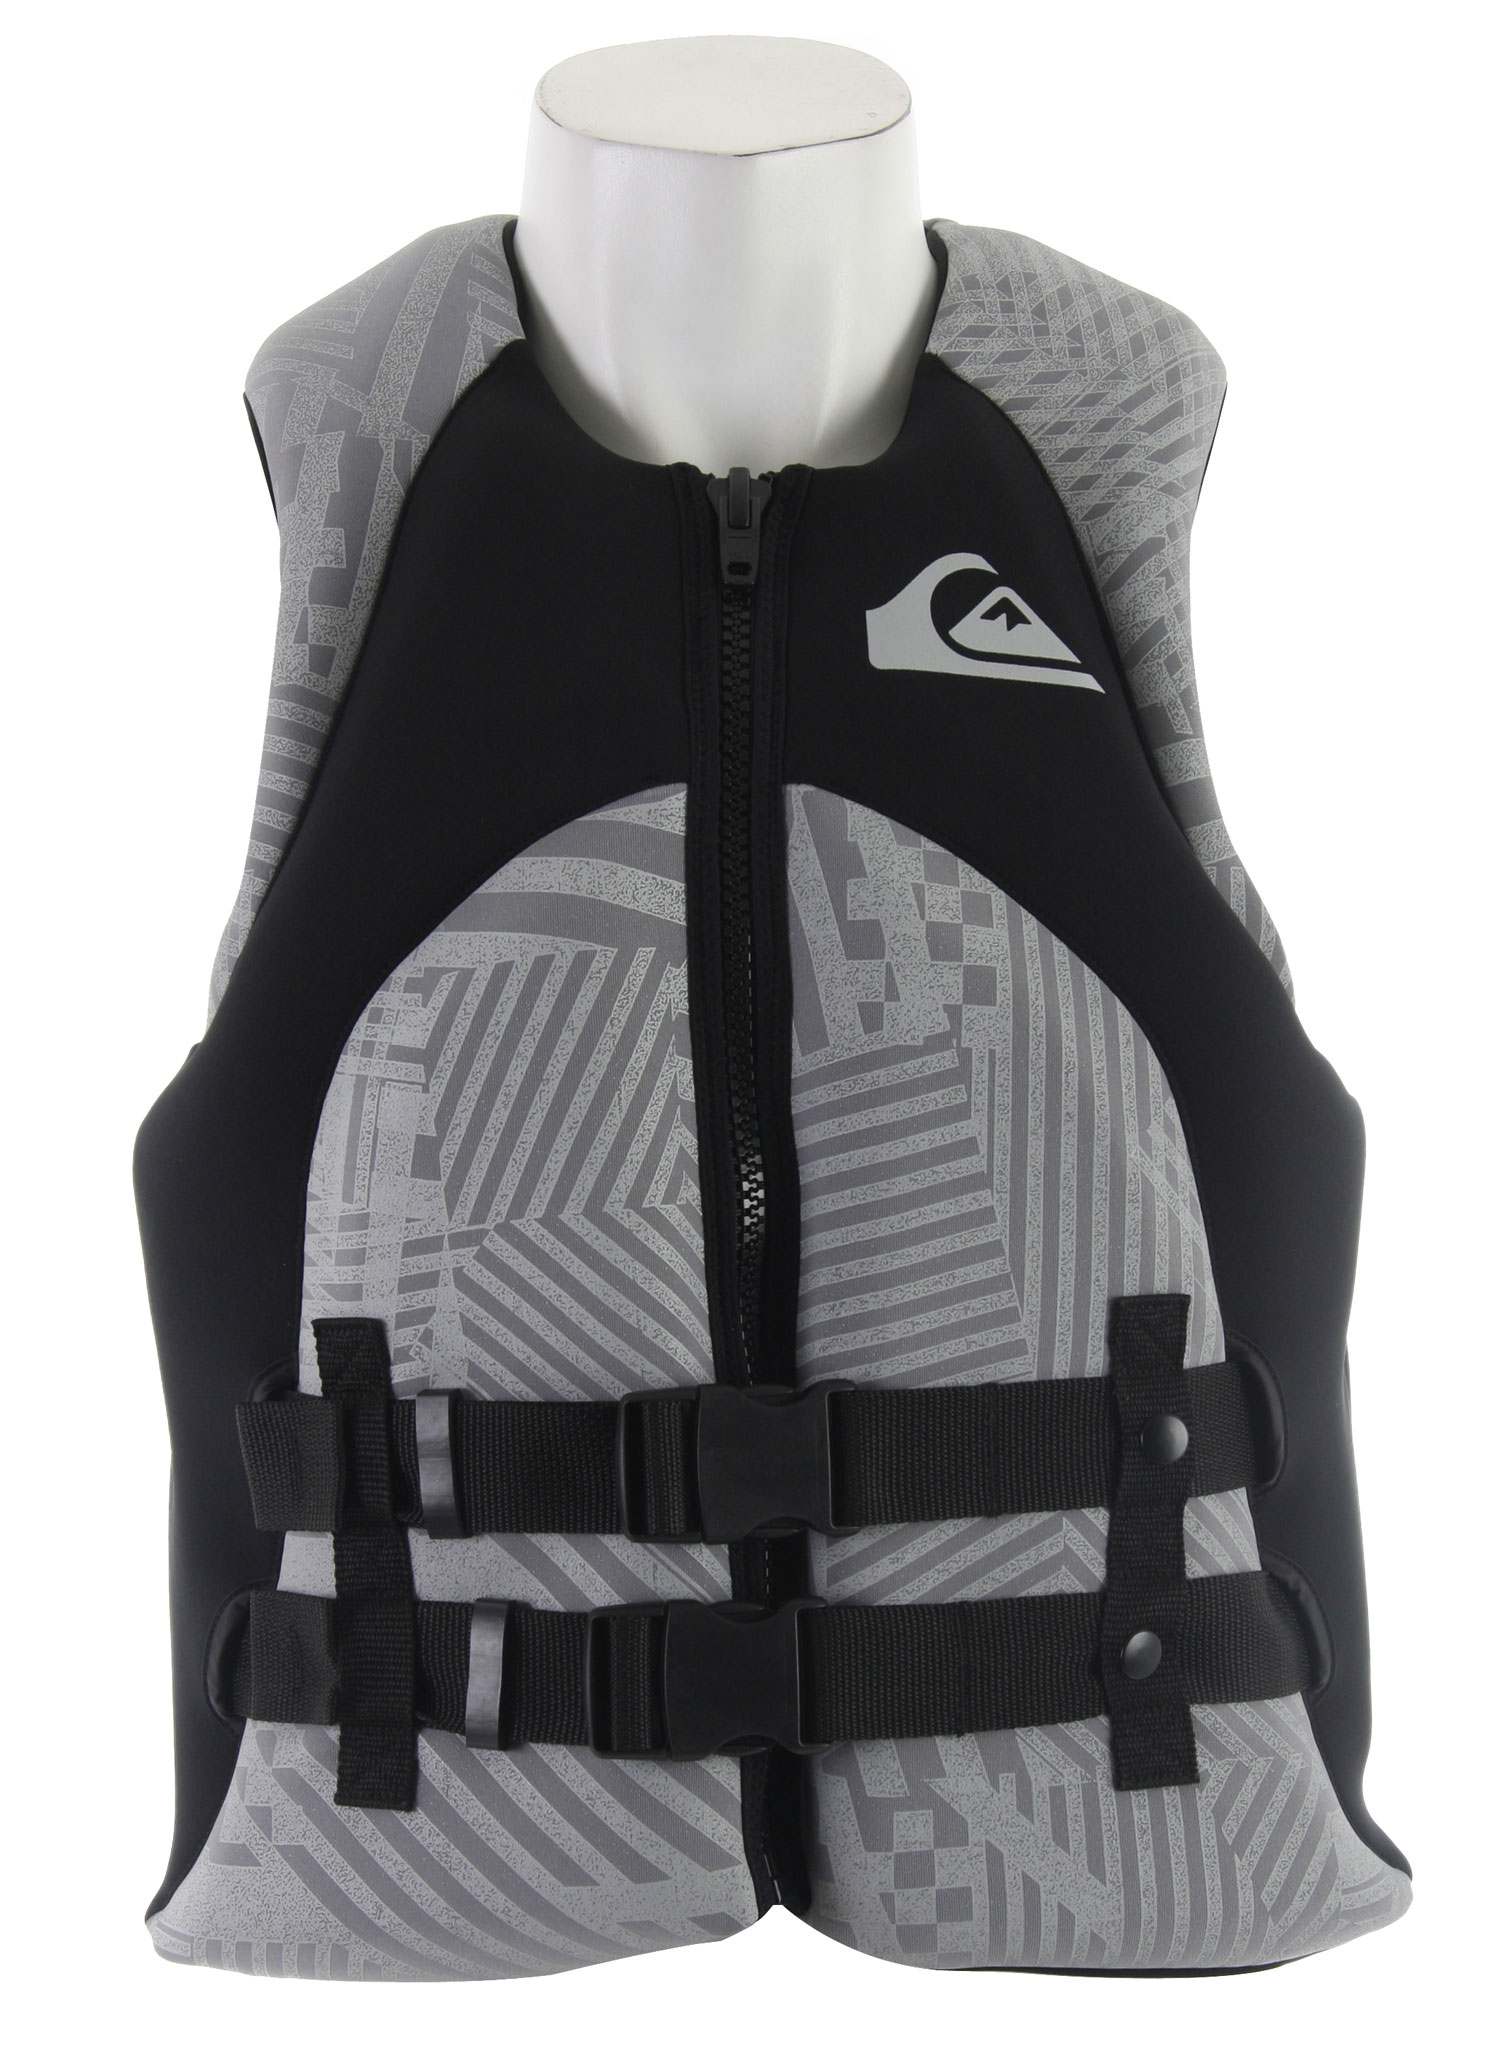 Wake Looking for the right vest to suit your active needs? The Quiksilver Rat Race Ignite USCG Vest is both durable and reliable. The quality is guaranteed, featuring 2 buckle front zip with hidden back straps. Rest assured, be safe and be ready to hit the race. Enjoy the race with the Quicksilver Rat Race Ignite USCG Vest and be pleased with the outcome.Key Features of the Quiksilver Rat Race Ignite USCG Vest: USCG approved PFD Flatlock stitched 2 buckle front zip with hidden back straps Quiksilver custom molded file - $83.95